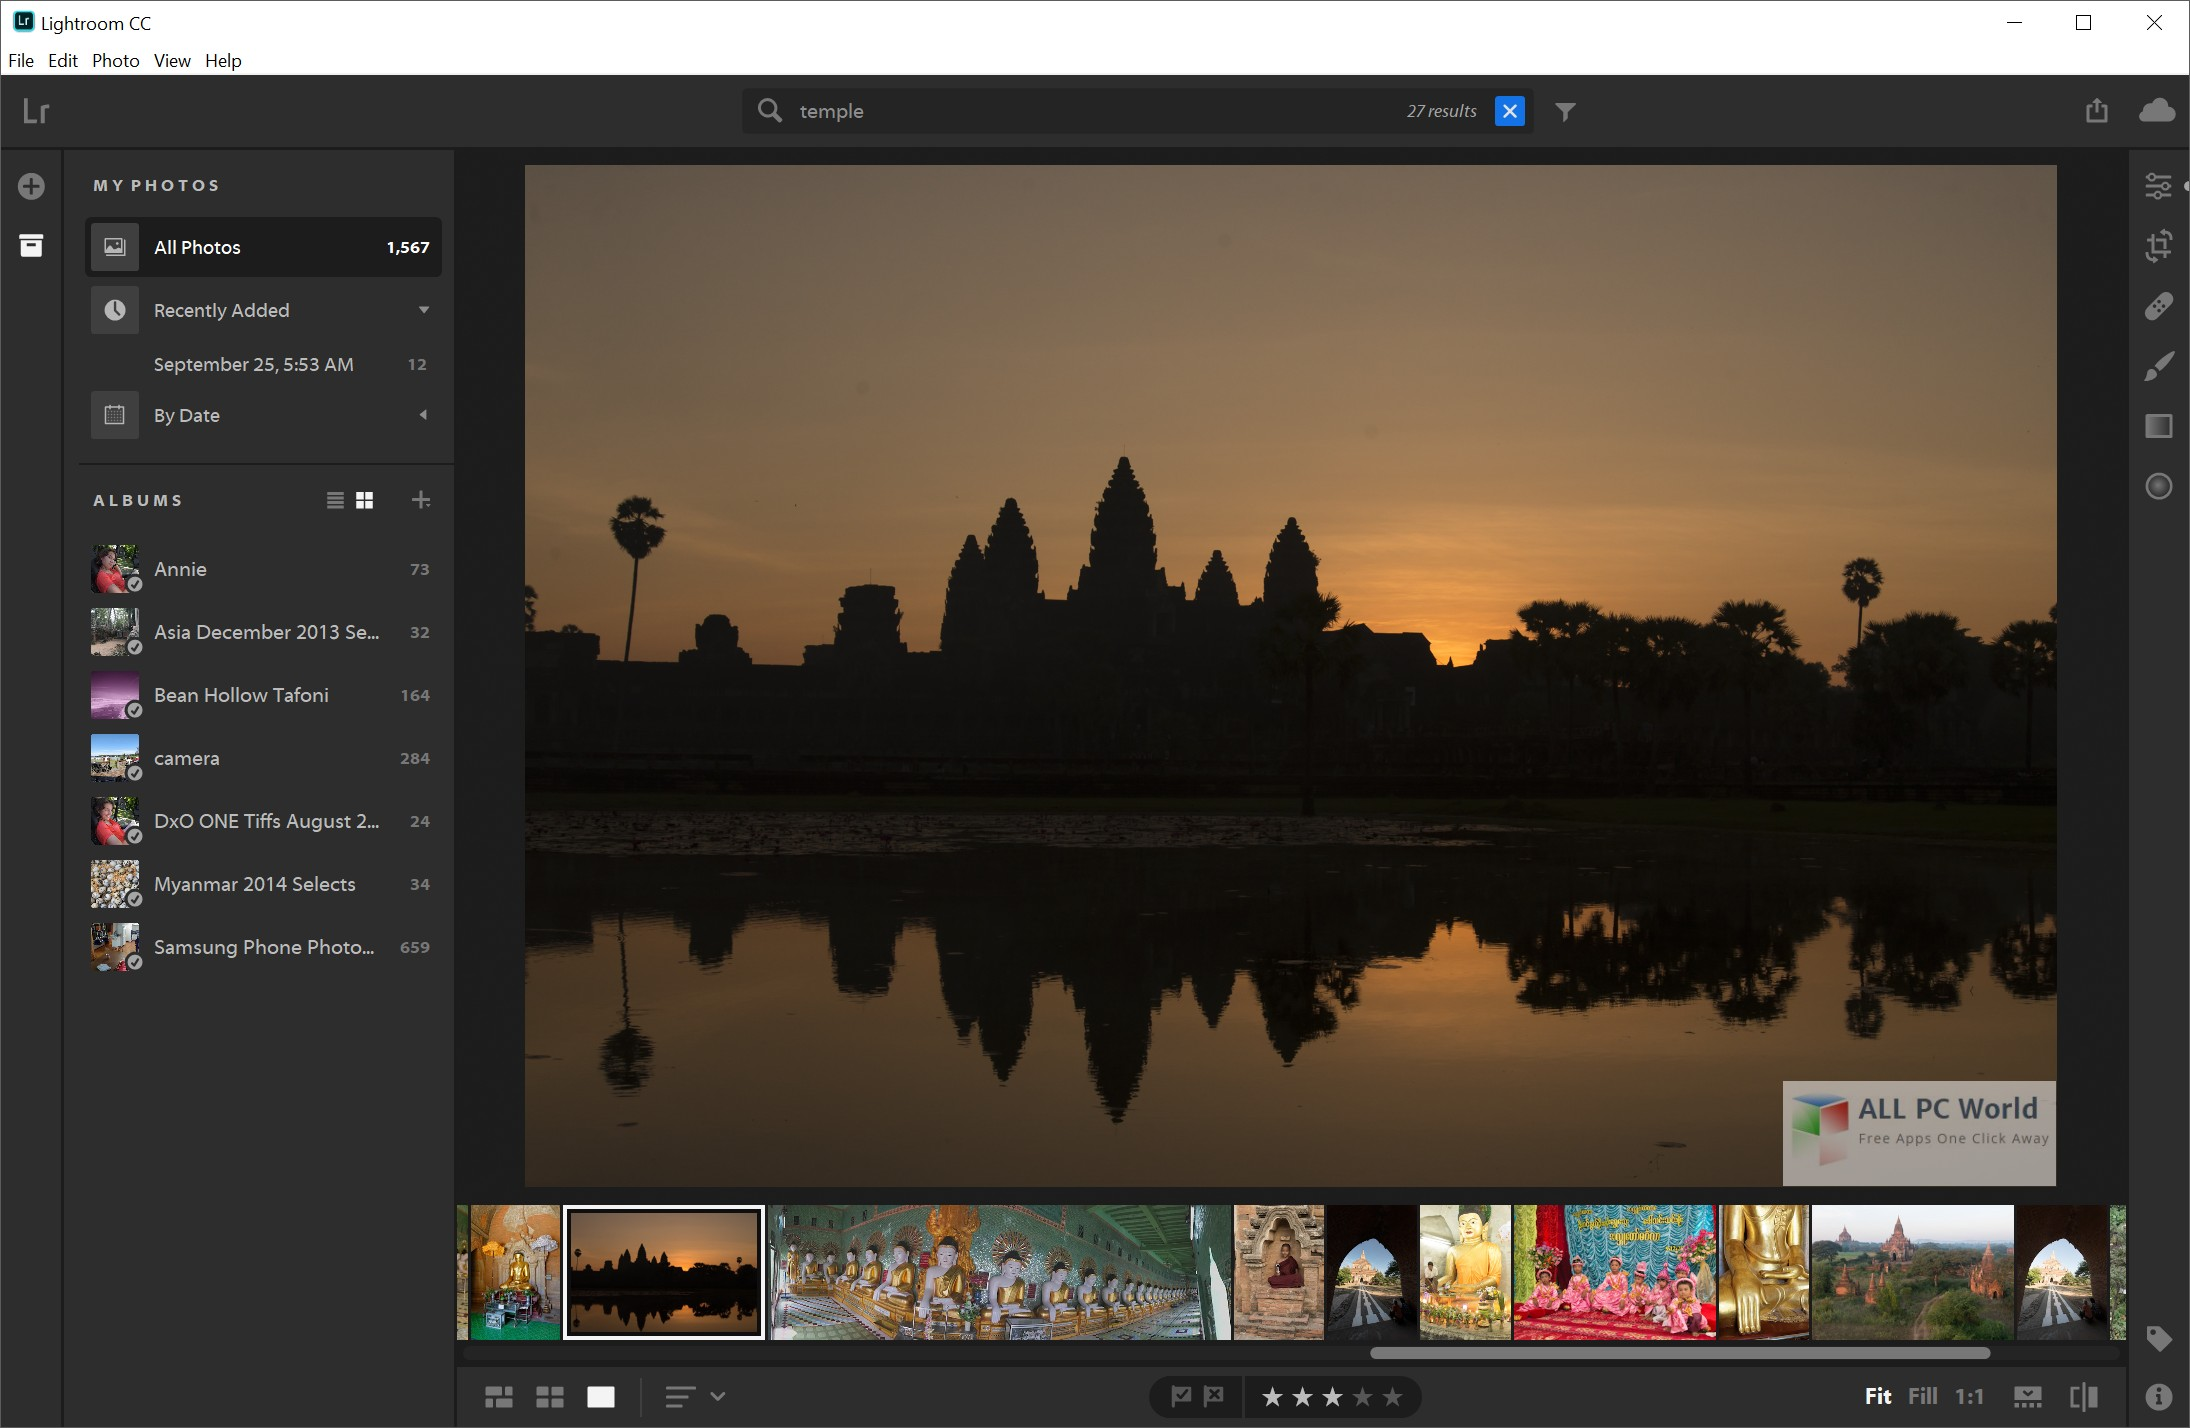 Portable Photoshop Portable Adobe Photoshop Lightroom Cc 1 Review All Pc World